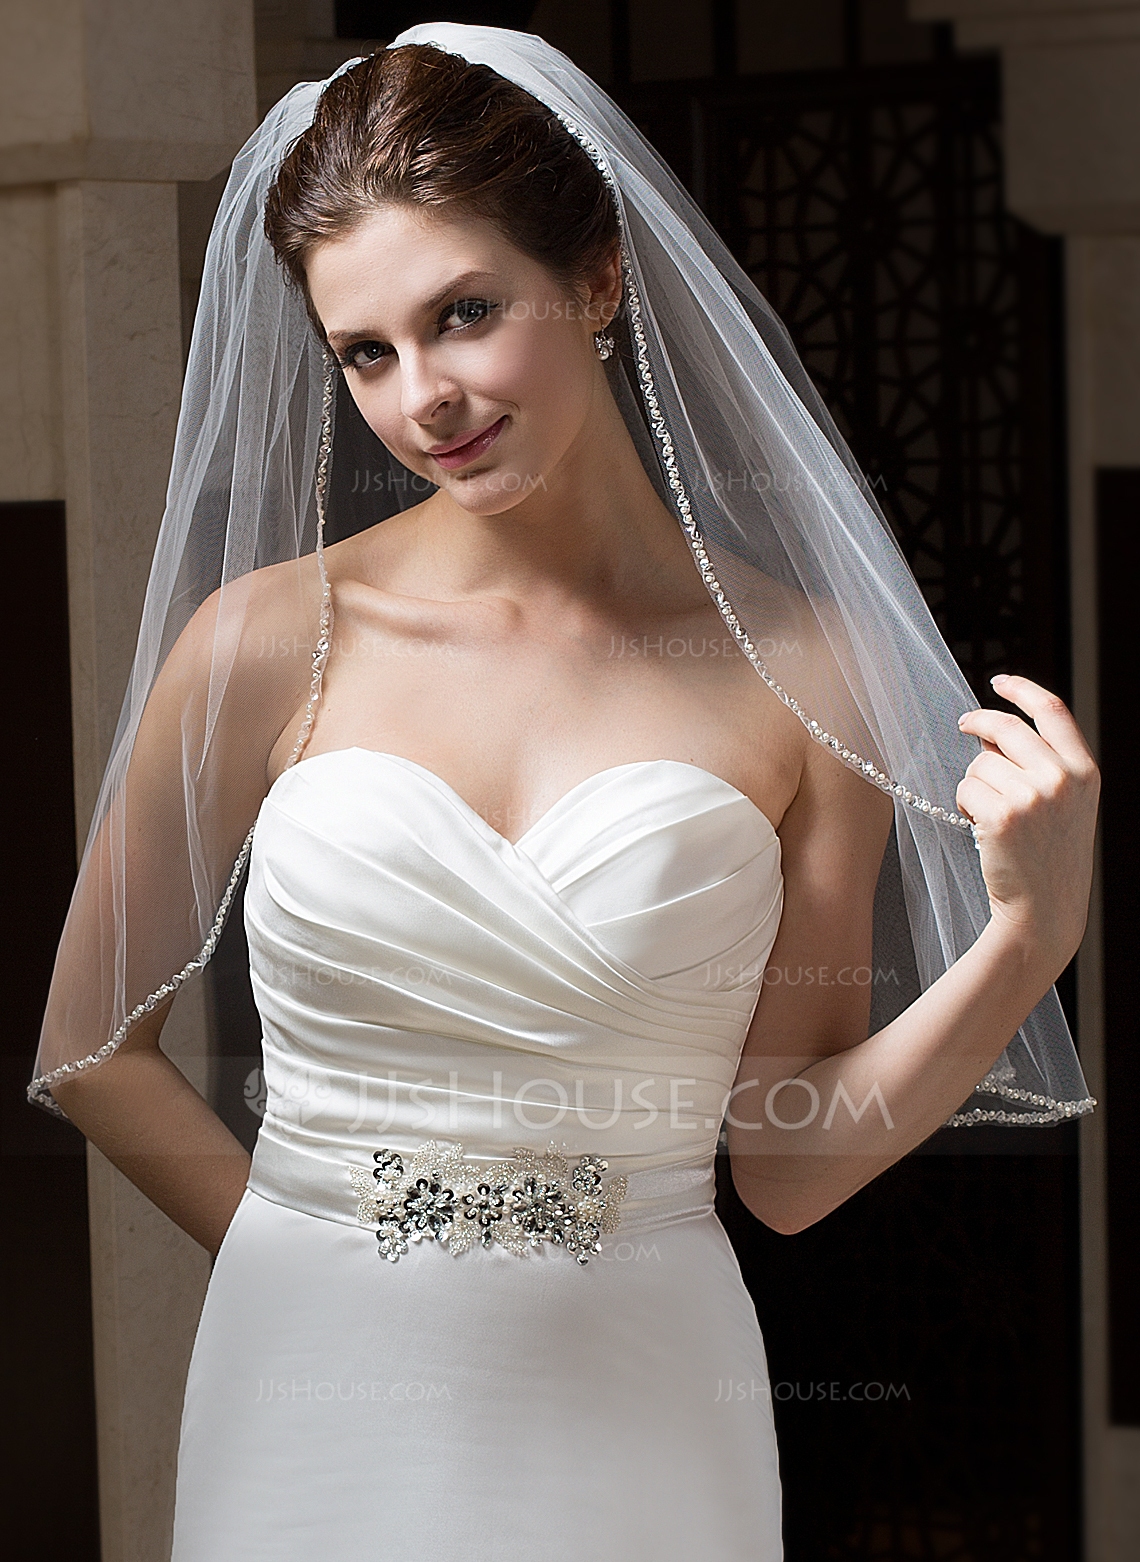 One Tier Elbow Bridal Veils With Pencil Edge g wedding veils Wedding Veils Loading zoom